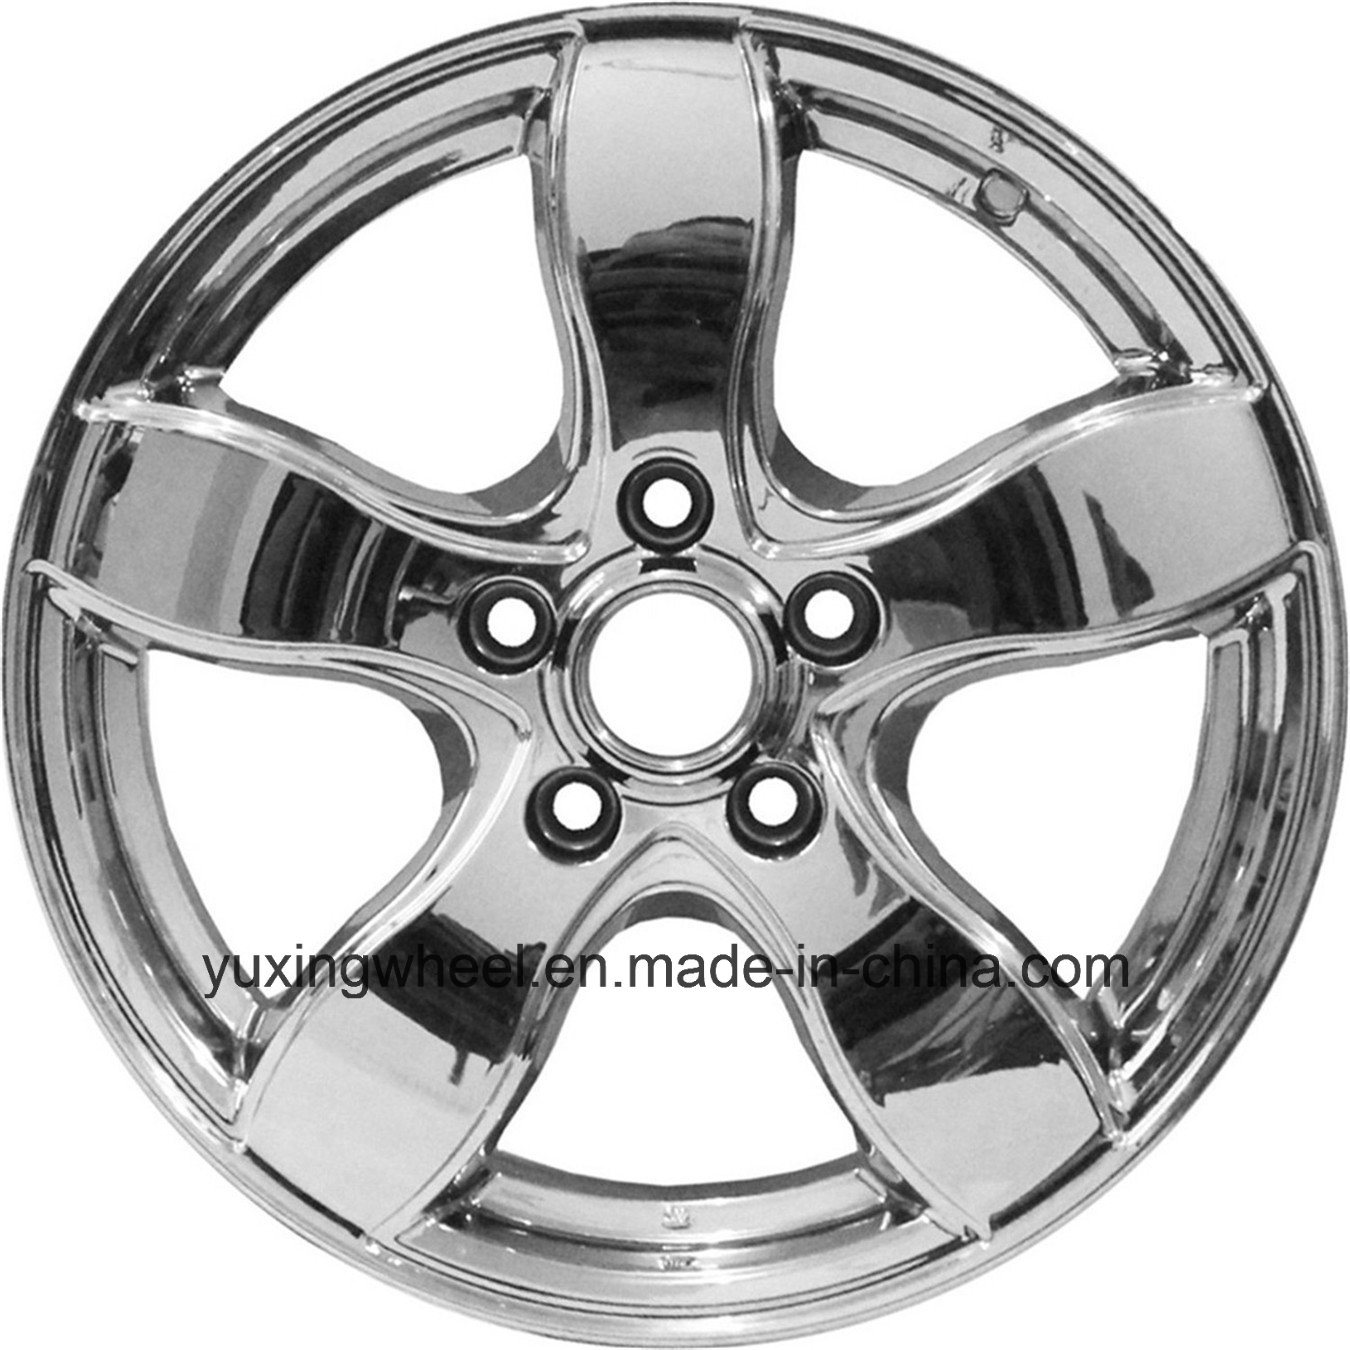 Aftermarket Alloy Wheel Rims, Alloy Wheel for Auto Parts